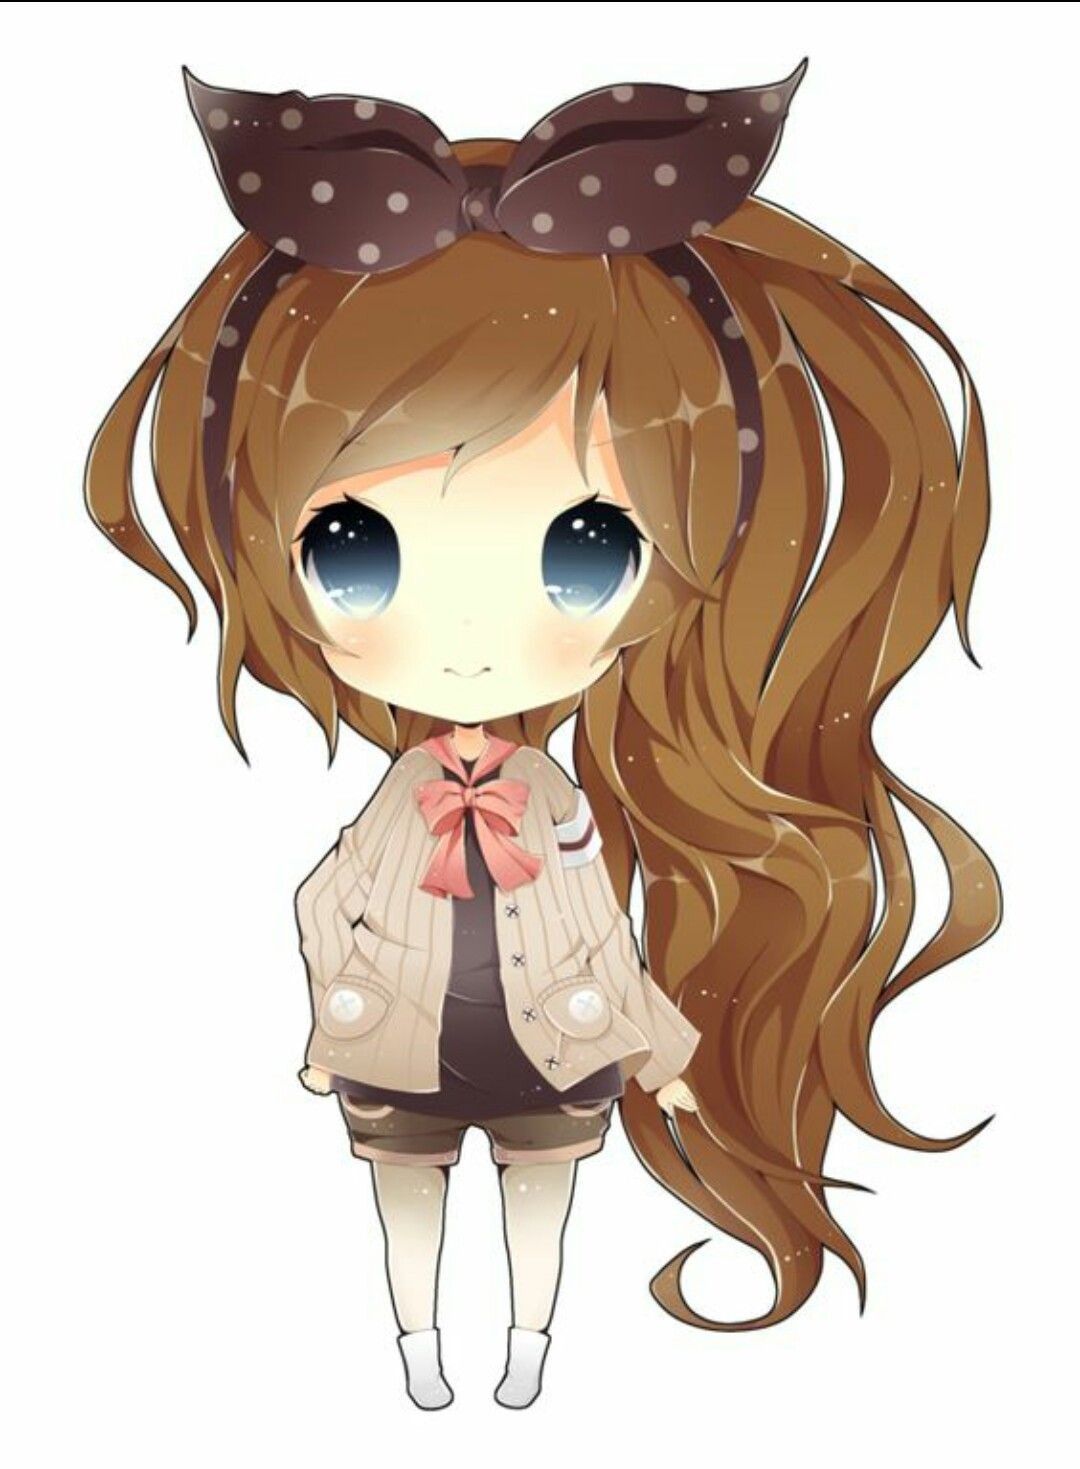 Pin by Laiba Mohsina on Anime Chibi, Kawaii chibi, Anime